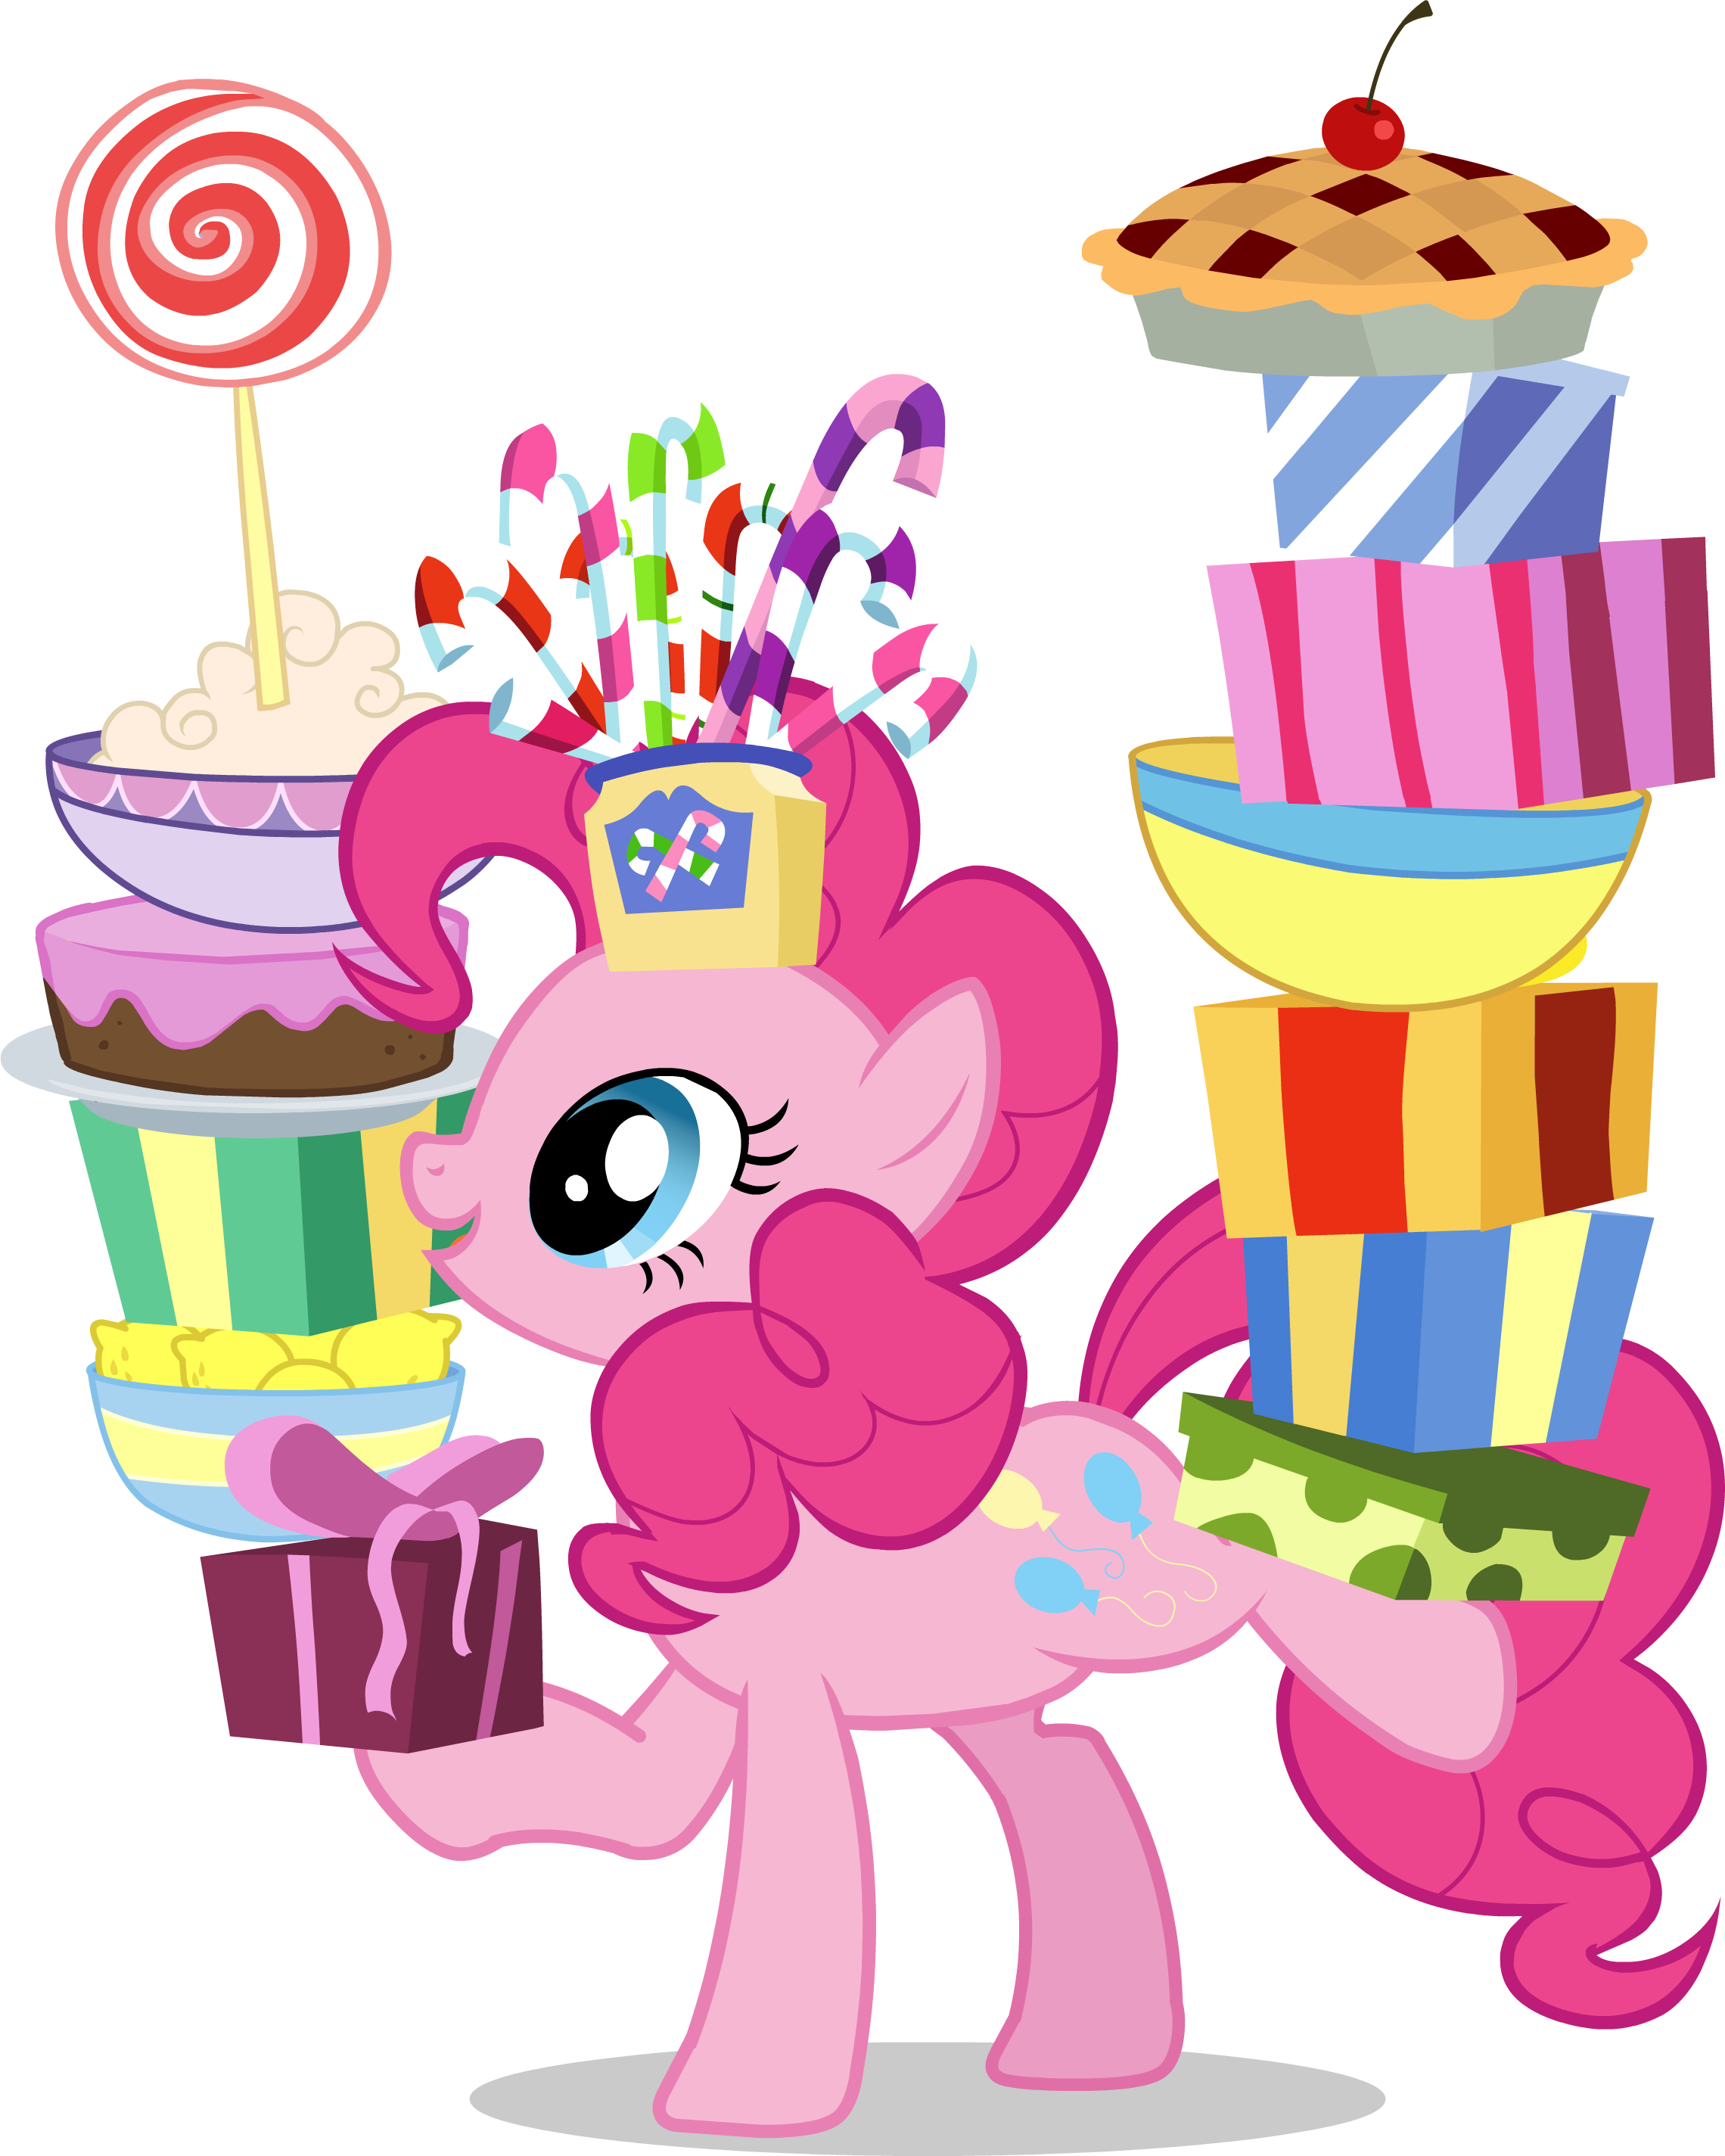 Little Pony With Cakes And Gifts Clipart image #47144